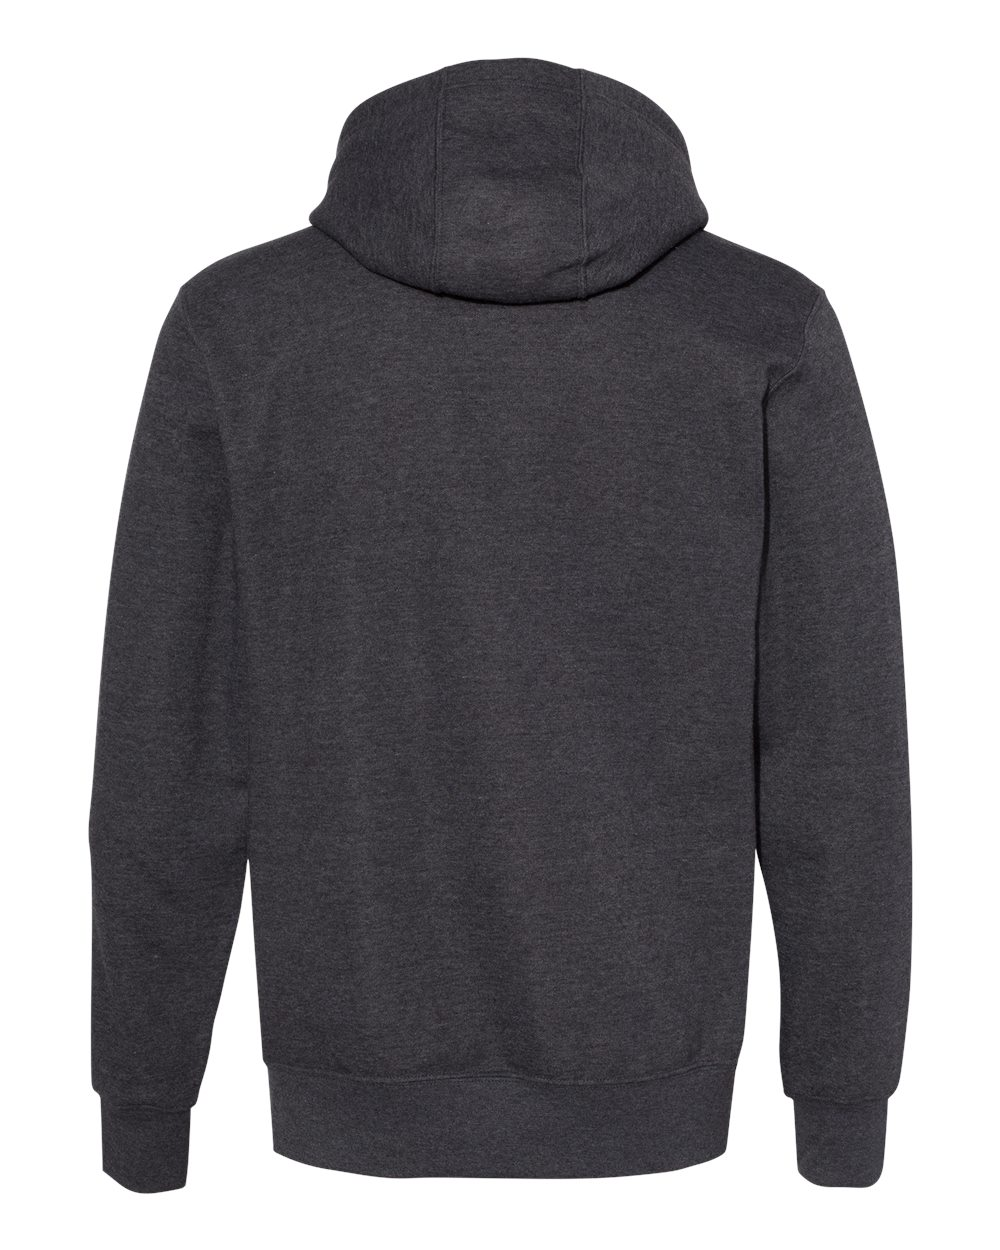 Russell-Athletic-Mens-Cotton-Rich-Fleece-Hooded-Sweatshirt-82ONSM-up-to-3XL miniature 13